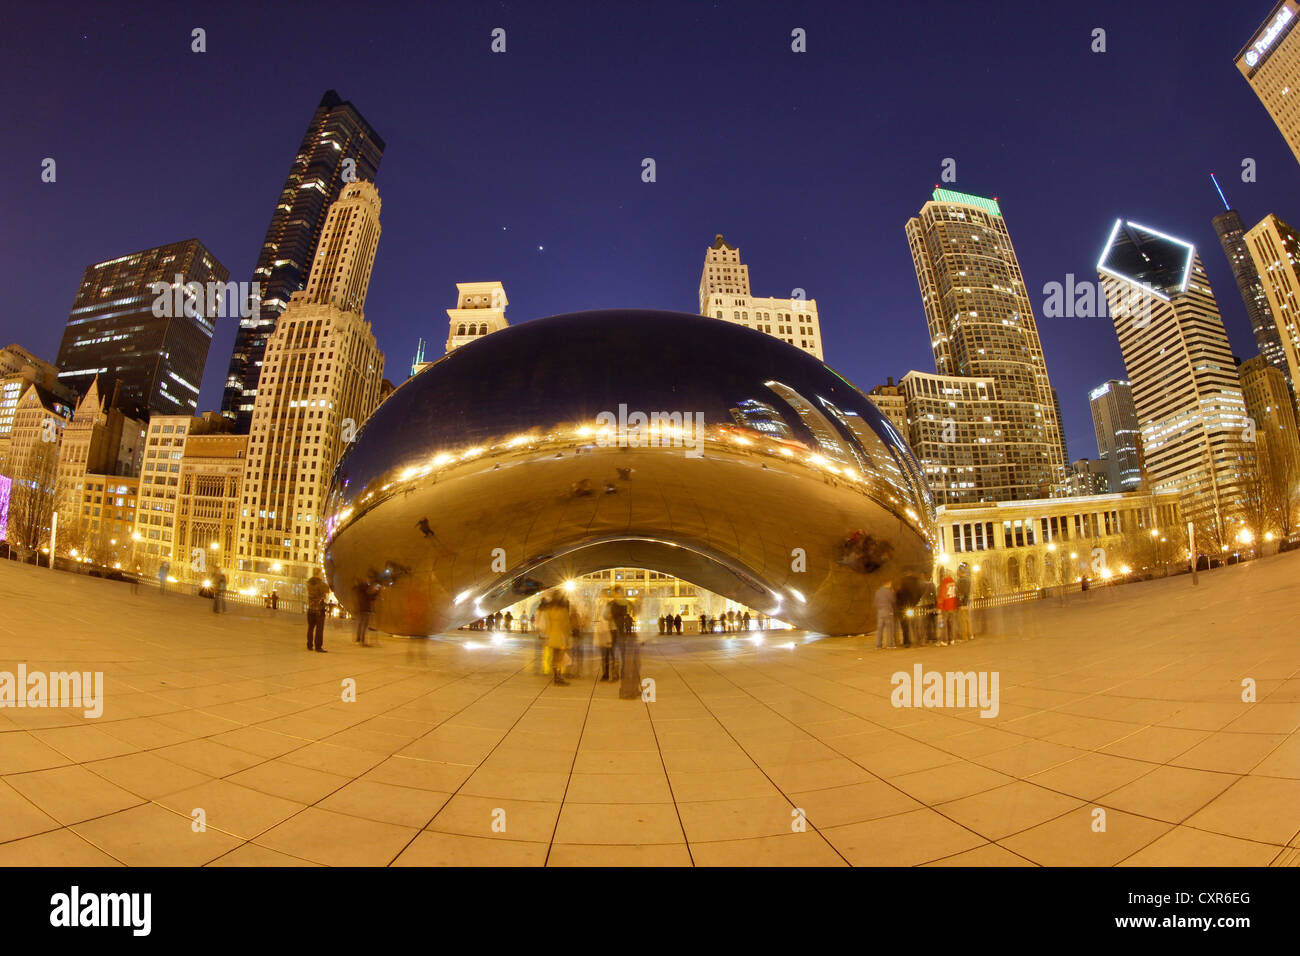 Cloud Gate in the evening, Chicago, Illinois, USA, North America - Stock Image